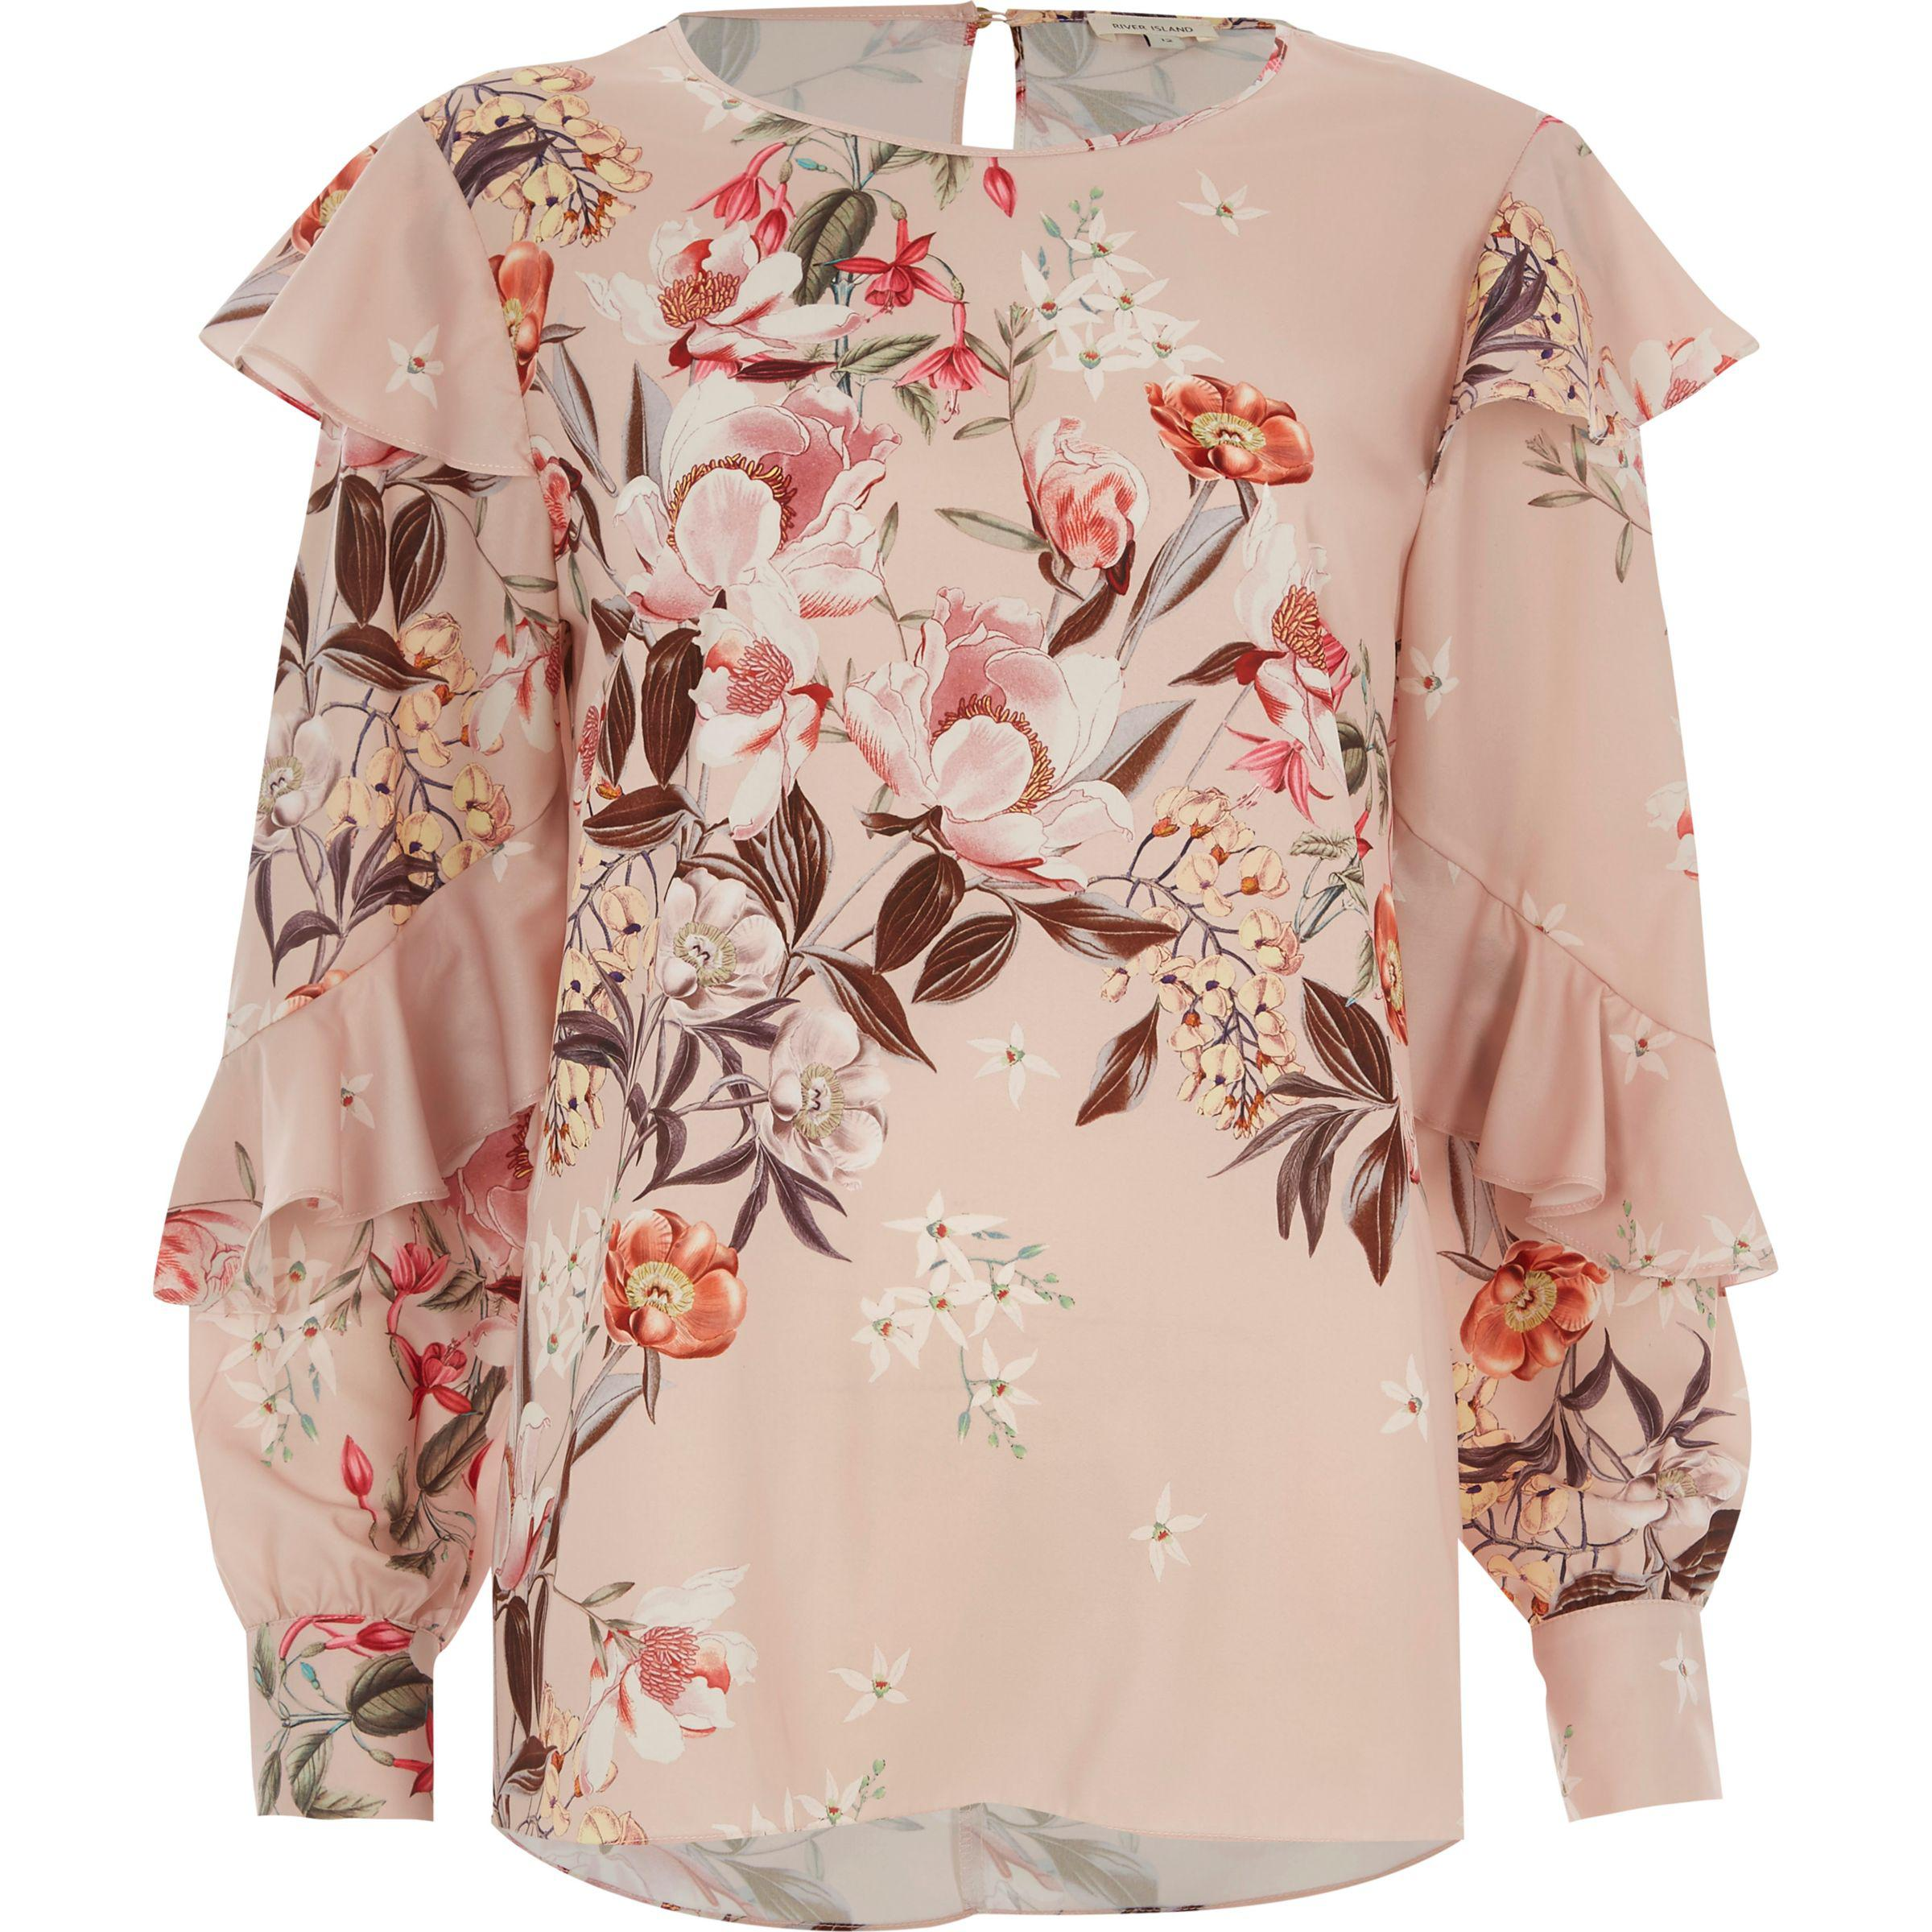 a19626f08daa76 River Island Pink Floral Print Frill Long Sleeve Top in Pink - Lyst